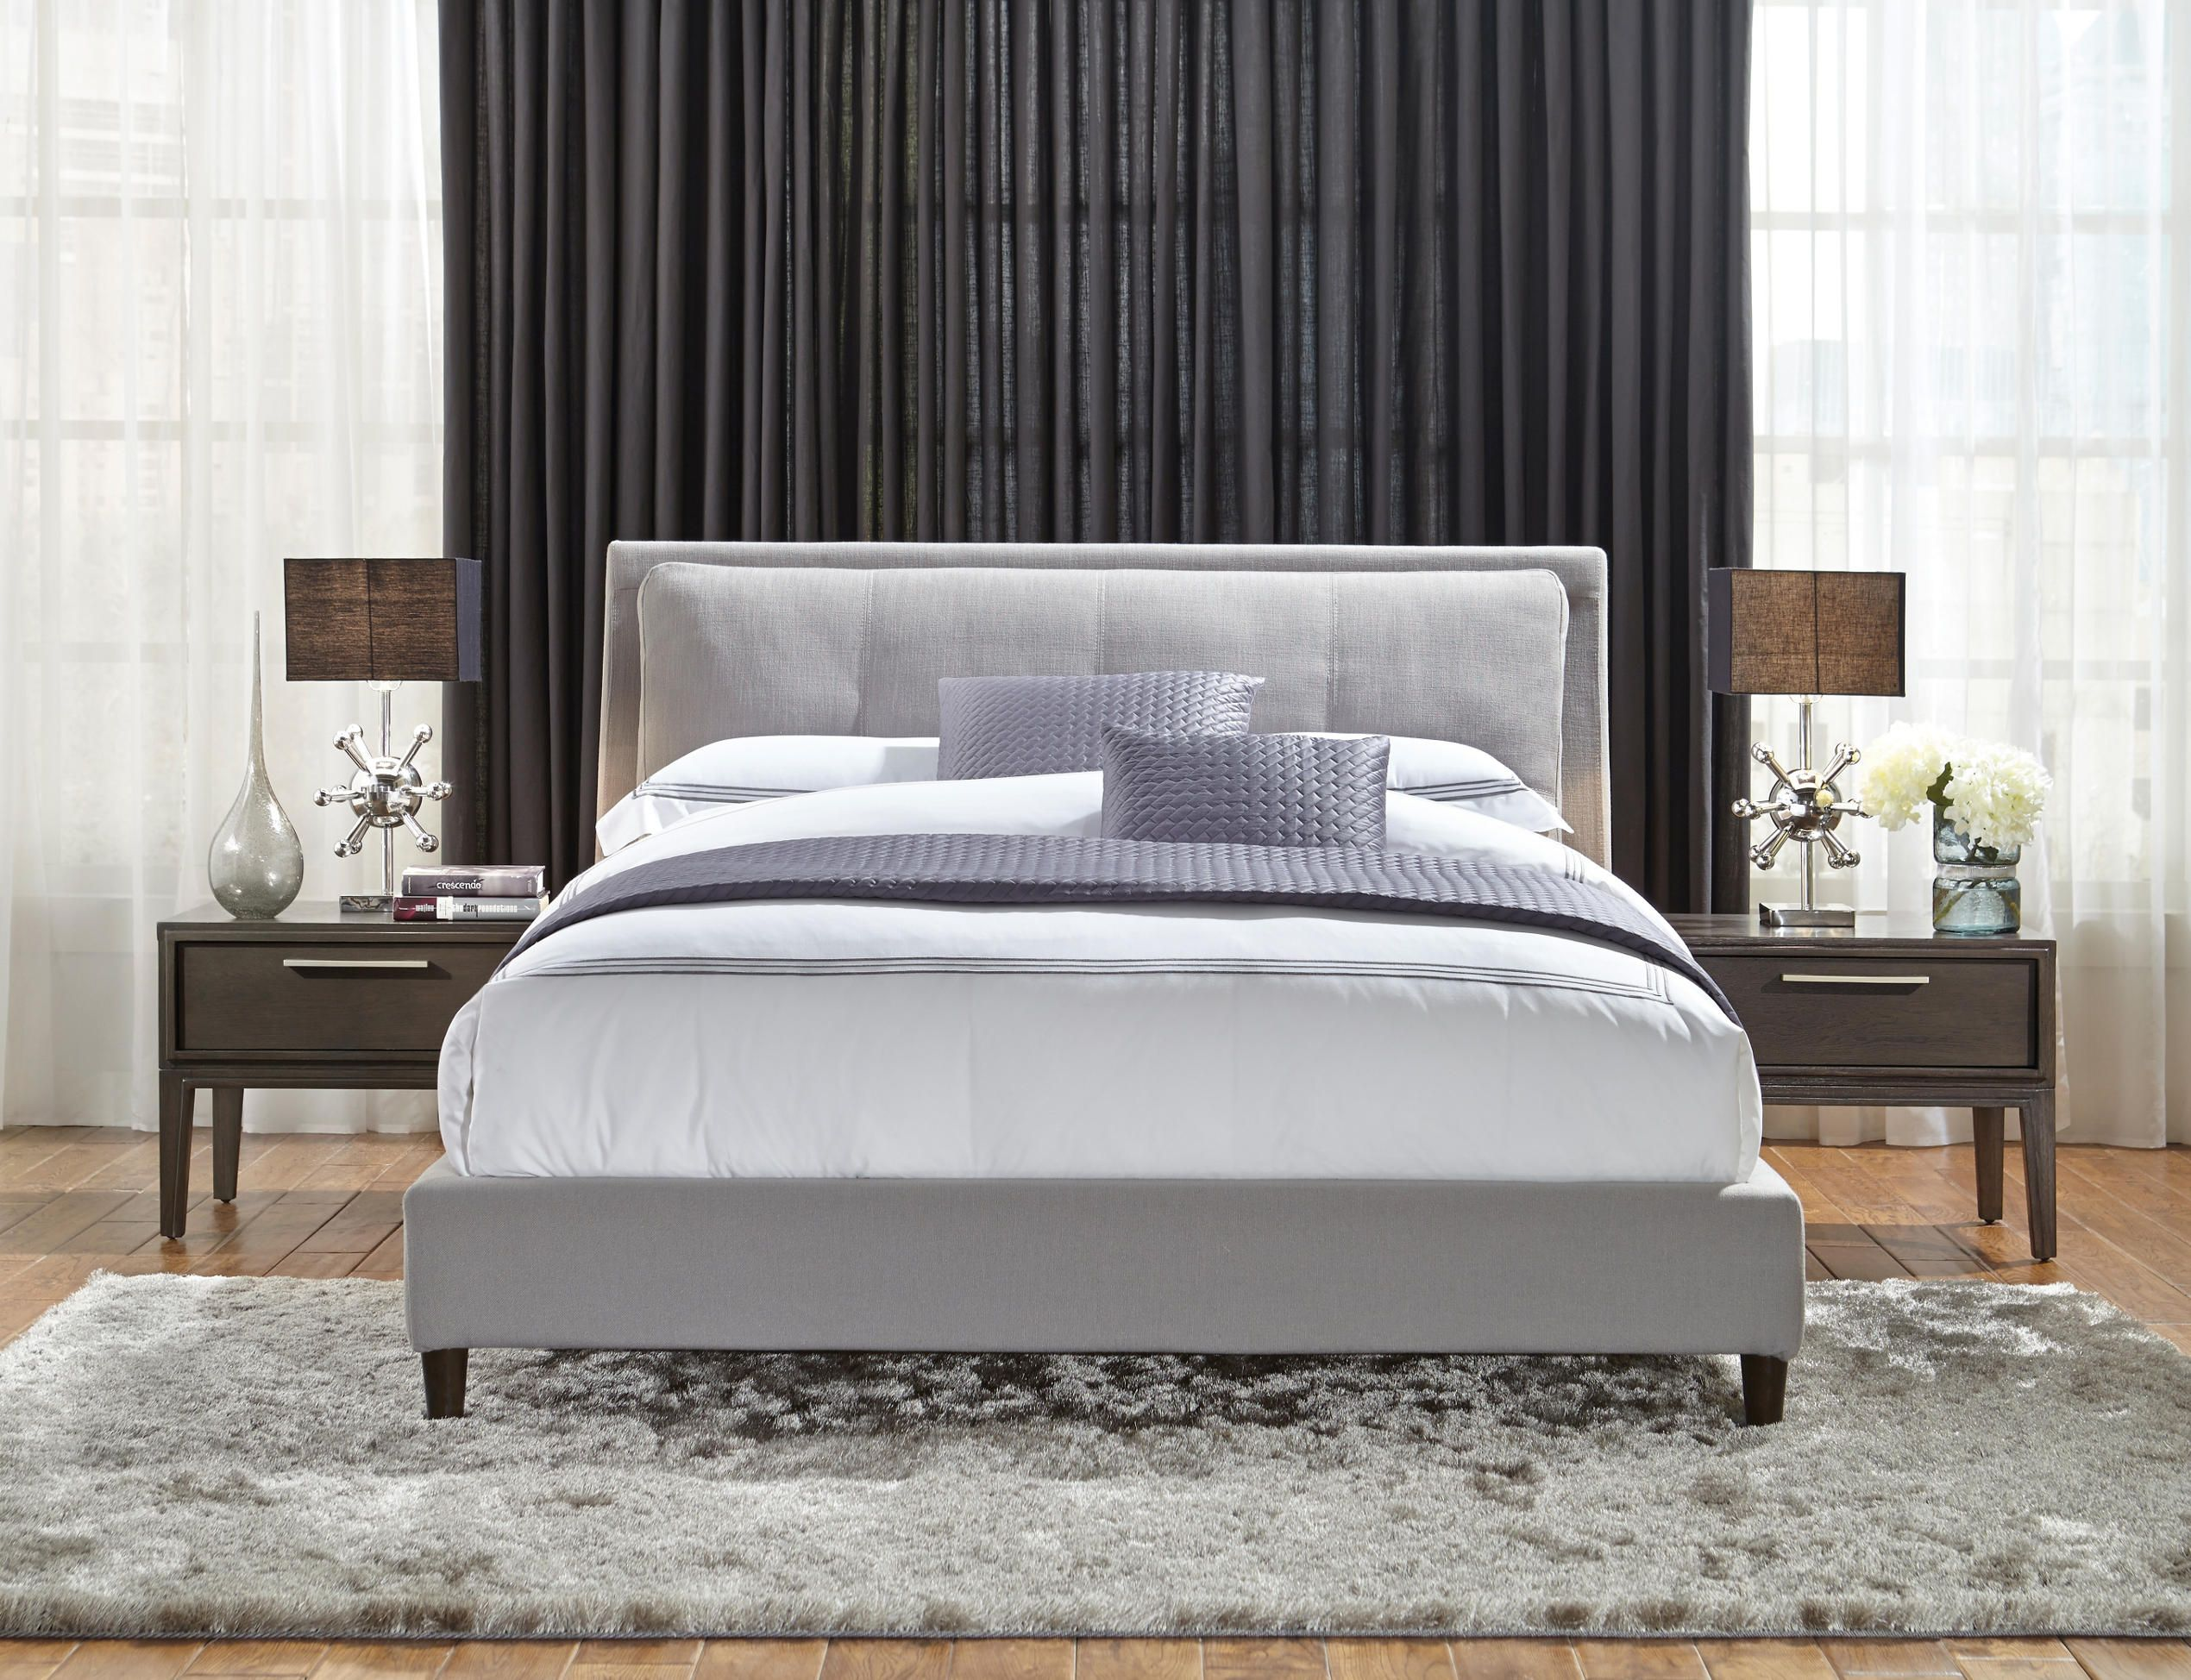 Delightful Upholstered Bed With Pillow Soft Headboard Provides Comfort For Upright  Sitting Good Looking